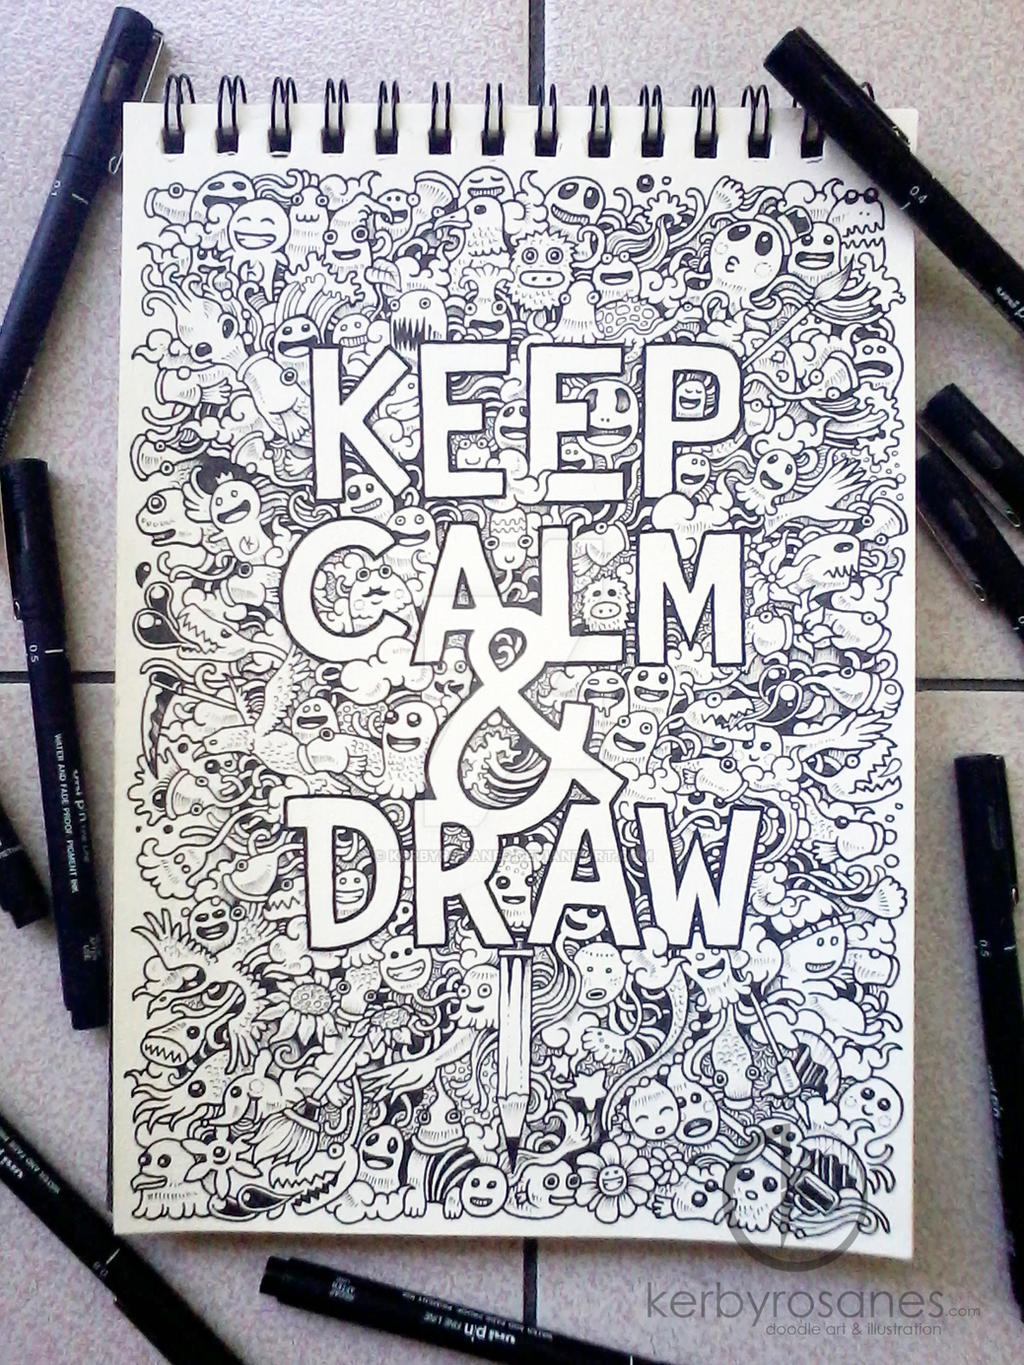 DOODLE ART: Keep Calm And Draw by kerbyrosanes on DeviantArt